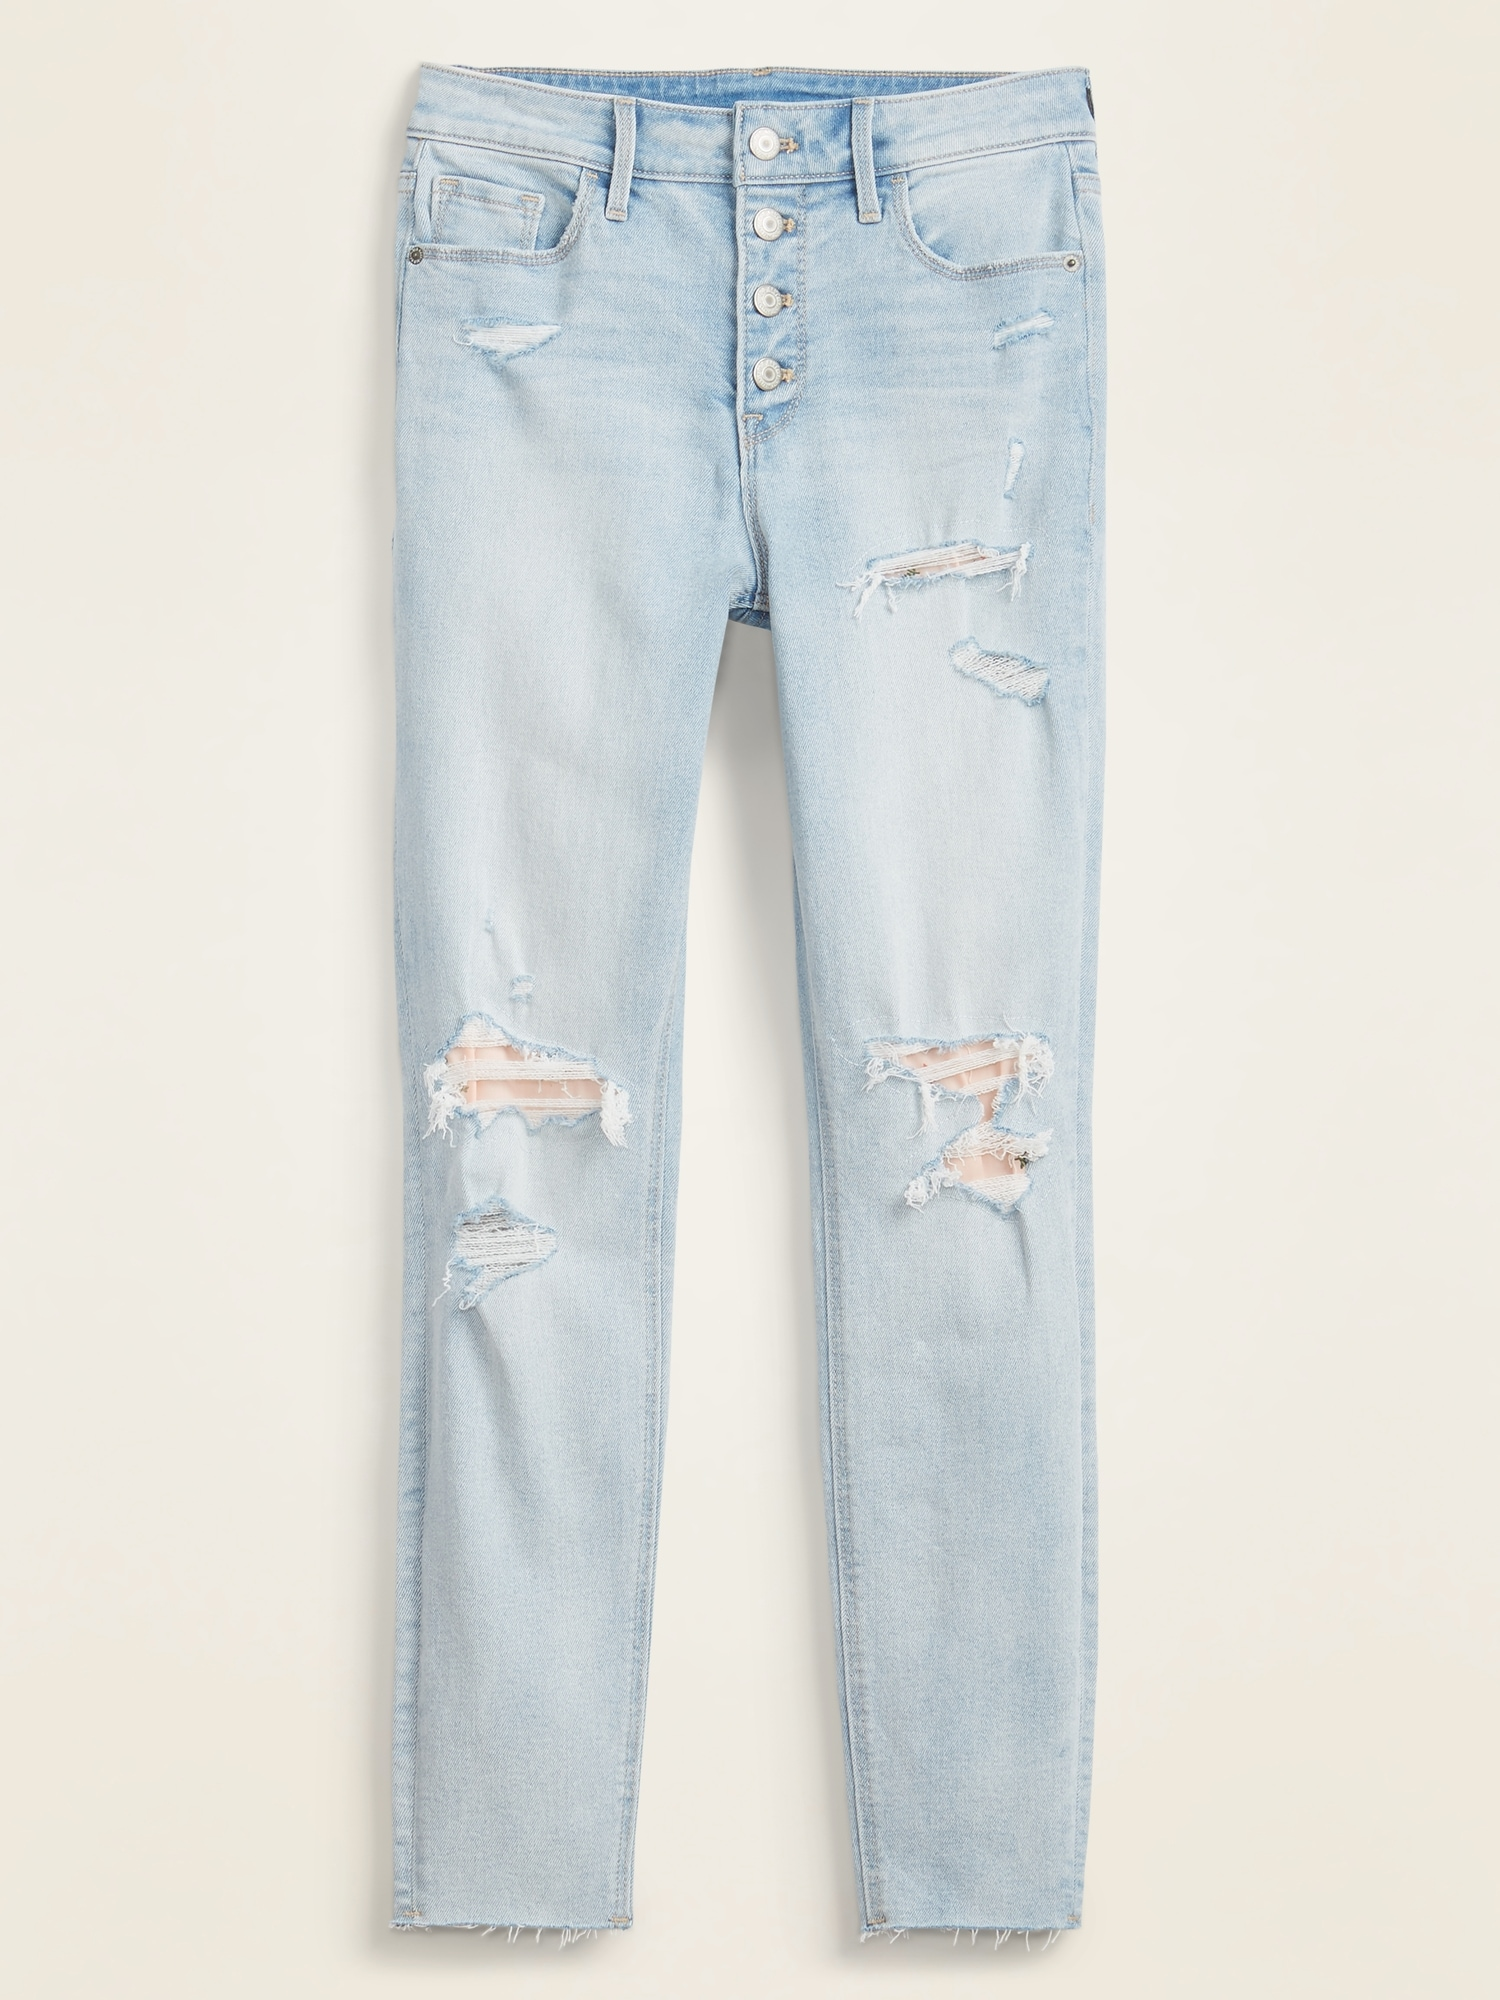 High Waisted Button Fly Rip Repair Rockstar Super Skinny Ankle Jeans For Women Old Navy